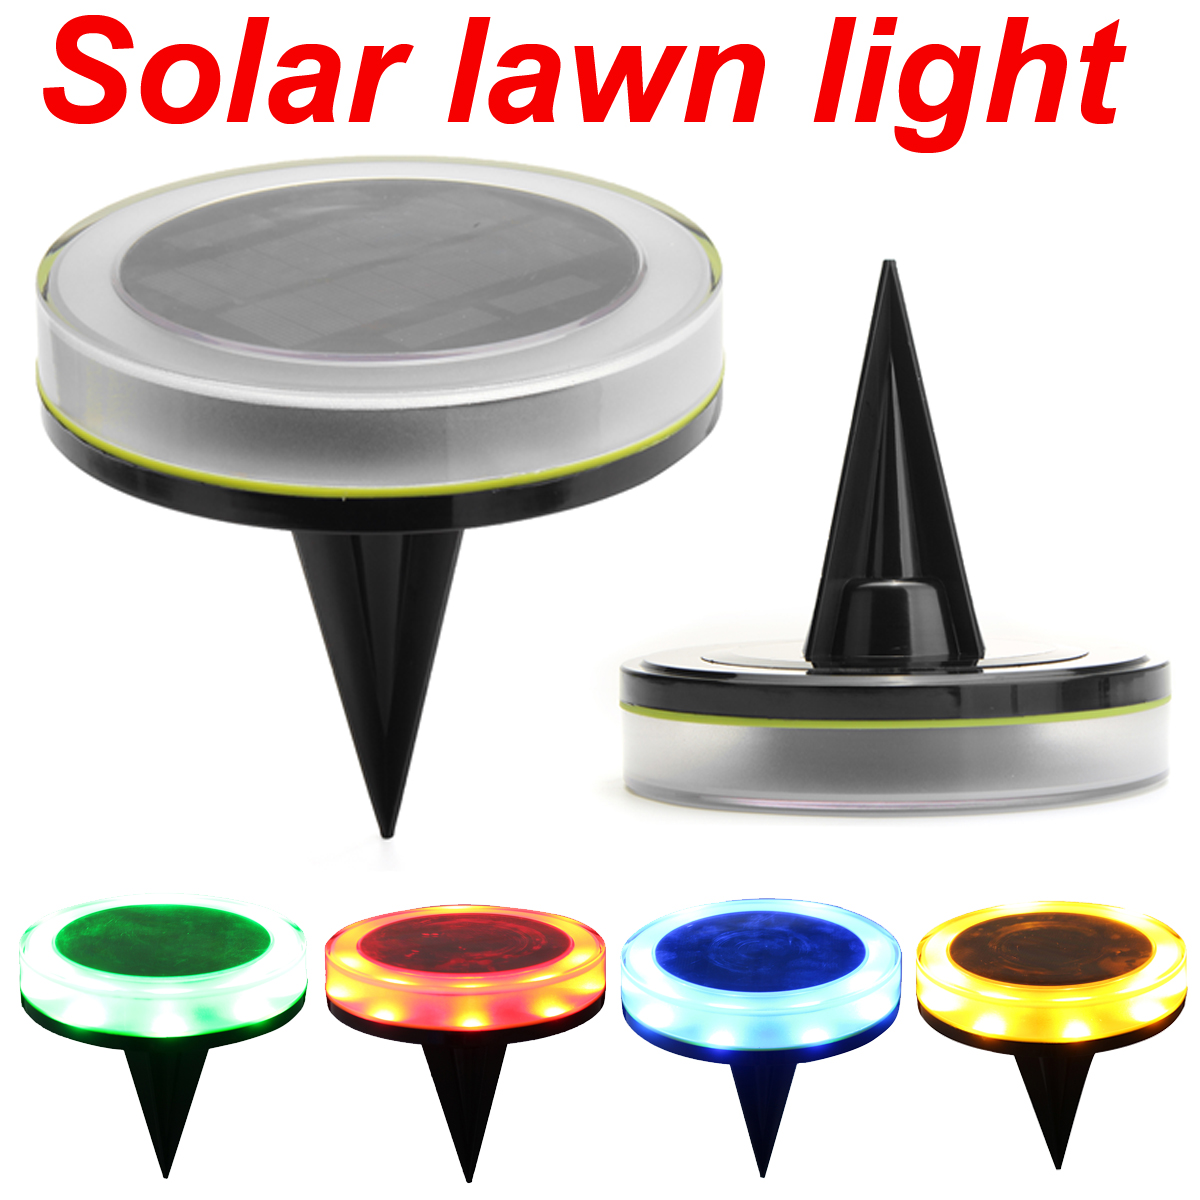 1Pc IP65 12 LED Solar Lawn Light Garden Lawn Lamp Outdoor Landscape Pathway Ground Light Solar Panel 1W